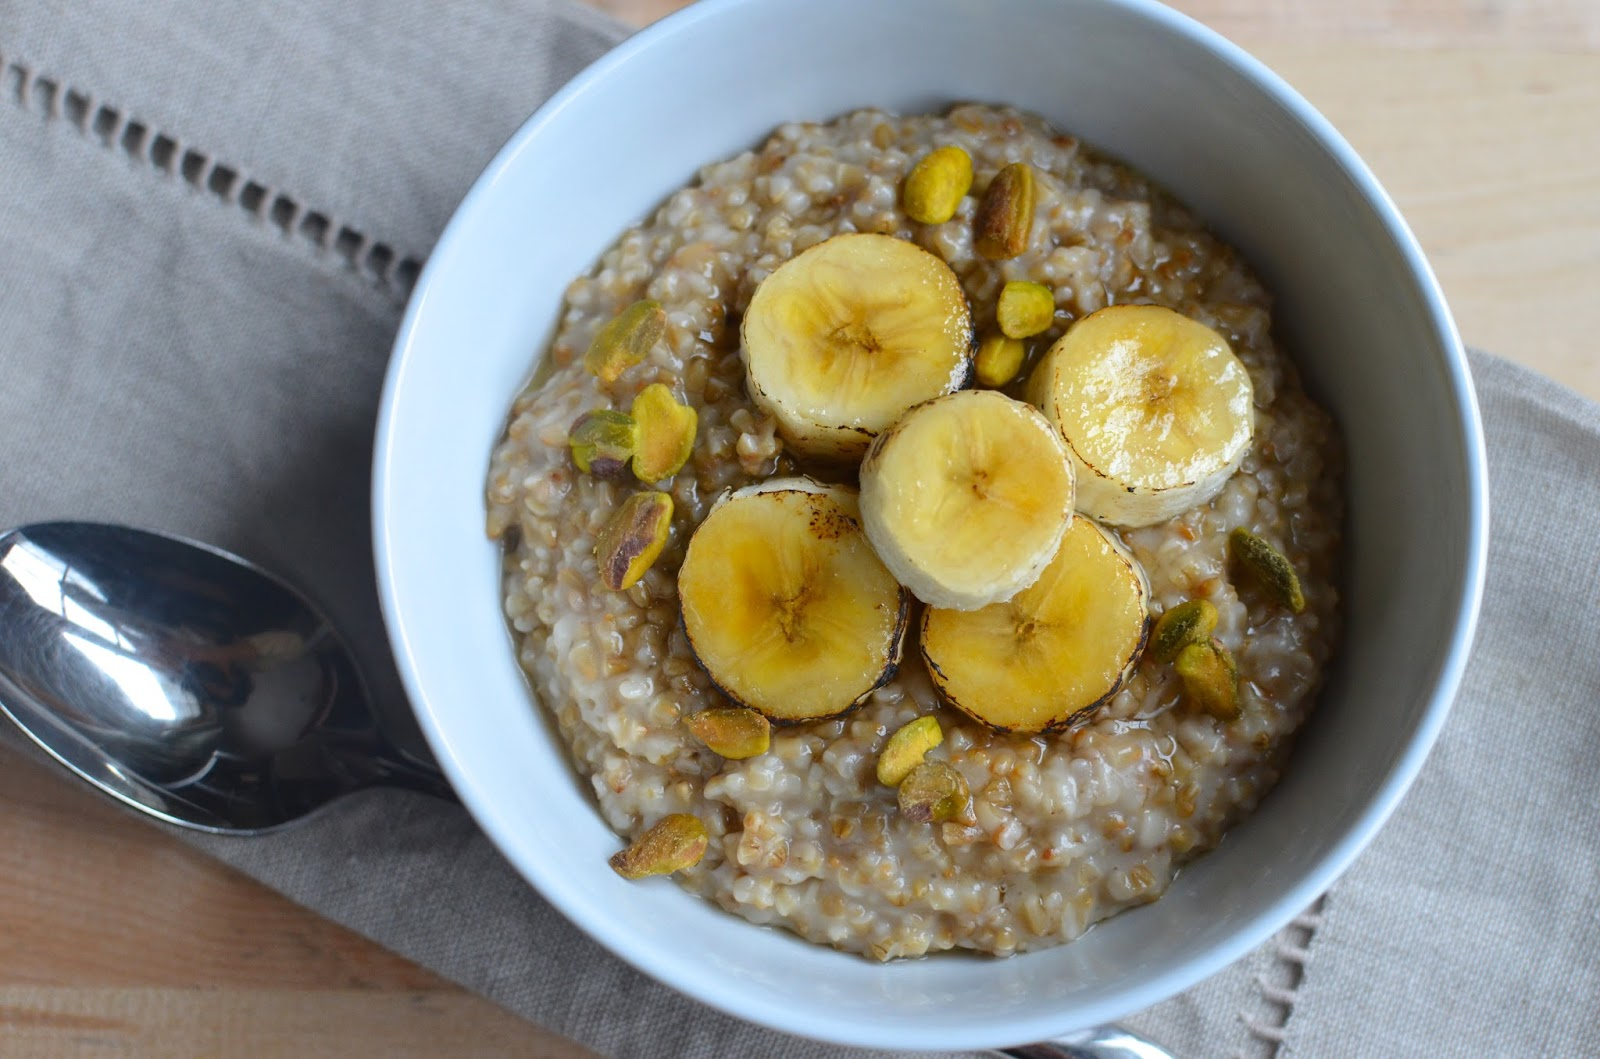 This toasted oatmeal makes for a firm and chewy texture